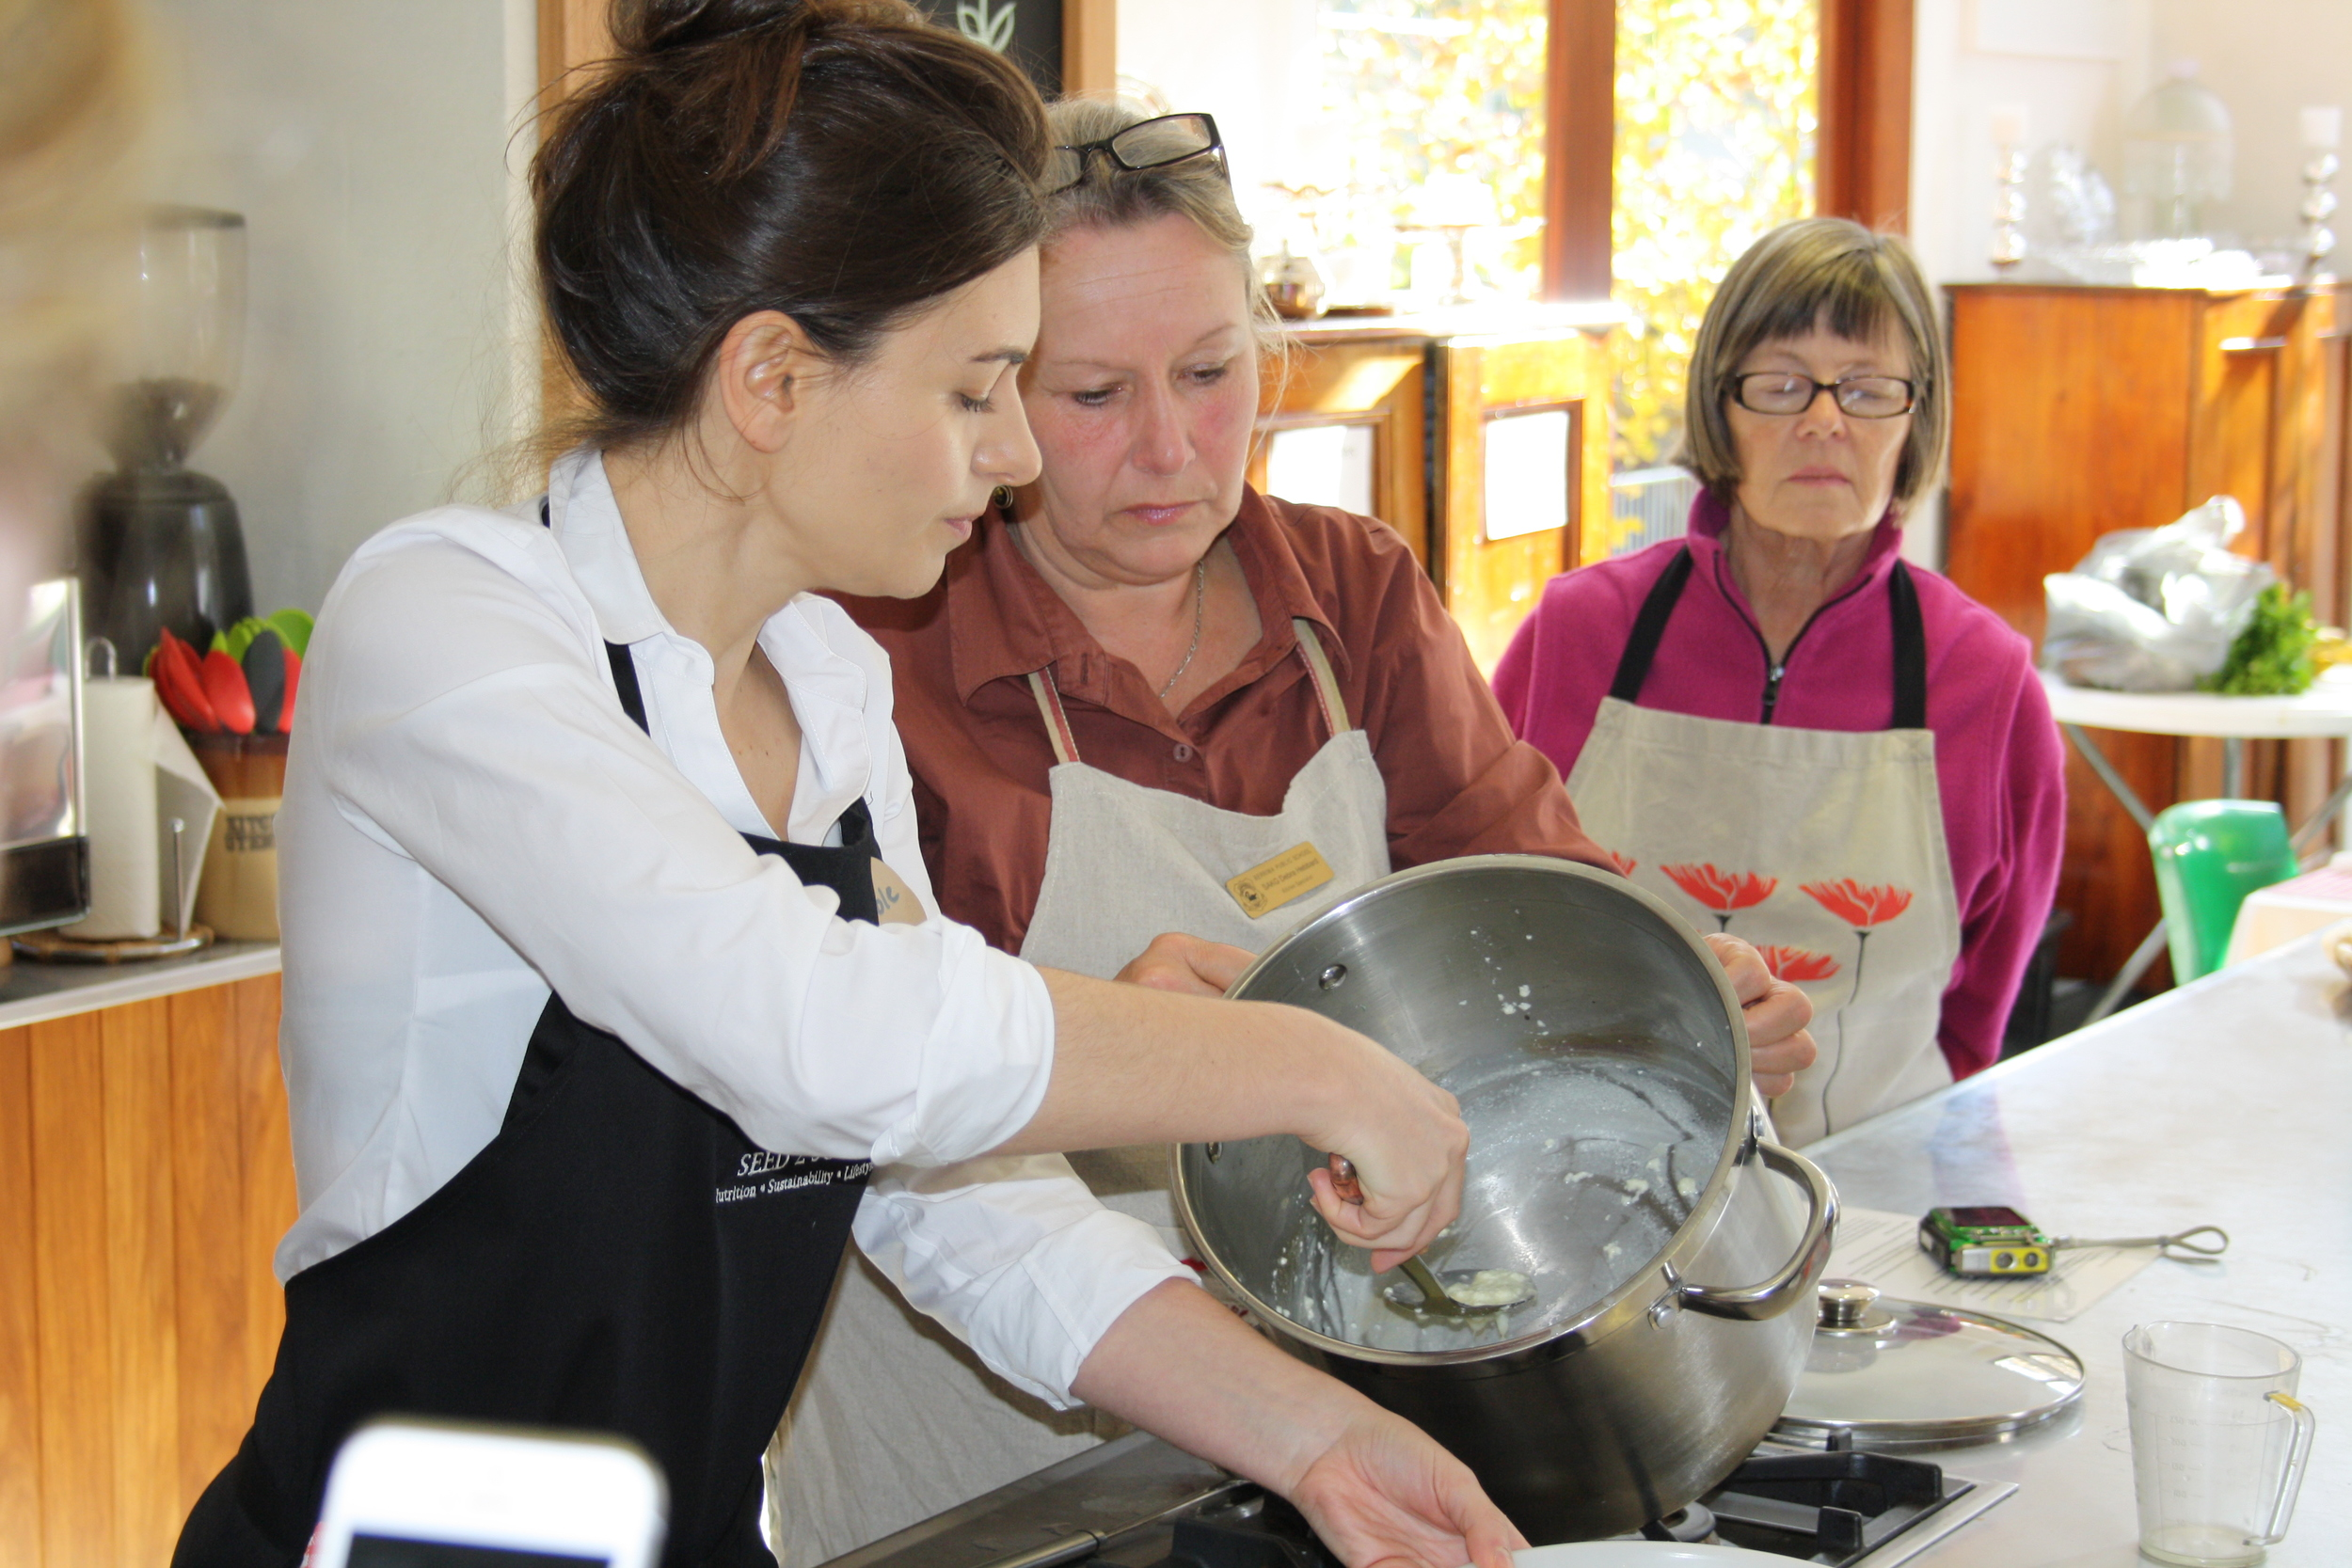 6 Nicole removing the ricotta curd into a hoop for straining.JPG